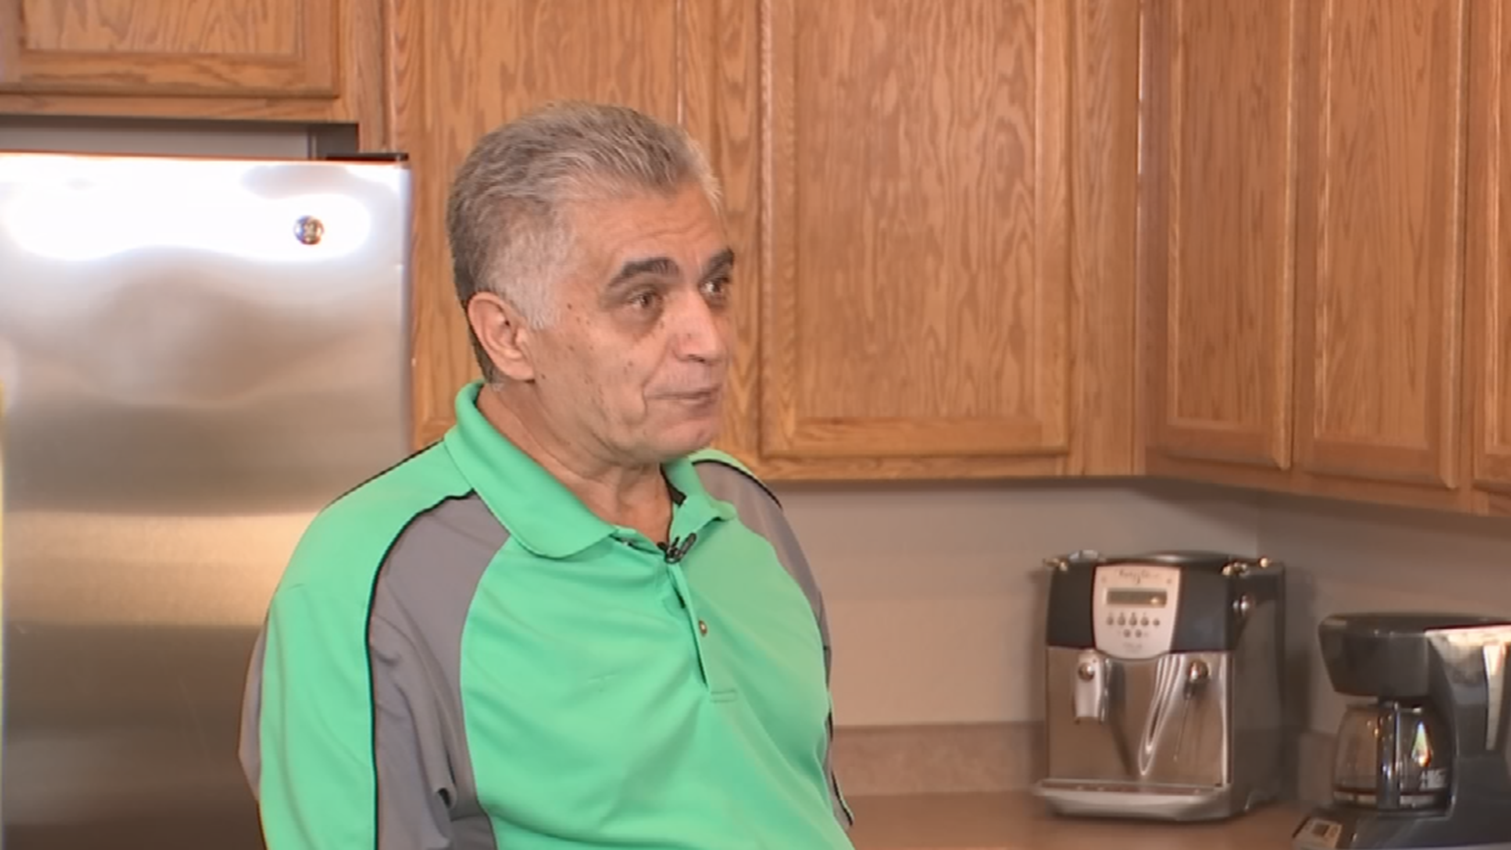 The Gilbert homeowner says he is thrilled that Total Protect Home Warranty not only returned his deductible, which they didn't have to do, but they also gave him money to replace his broken microwave for a total of $441. (Source: 3TV)